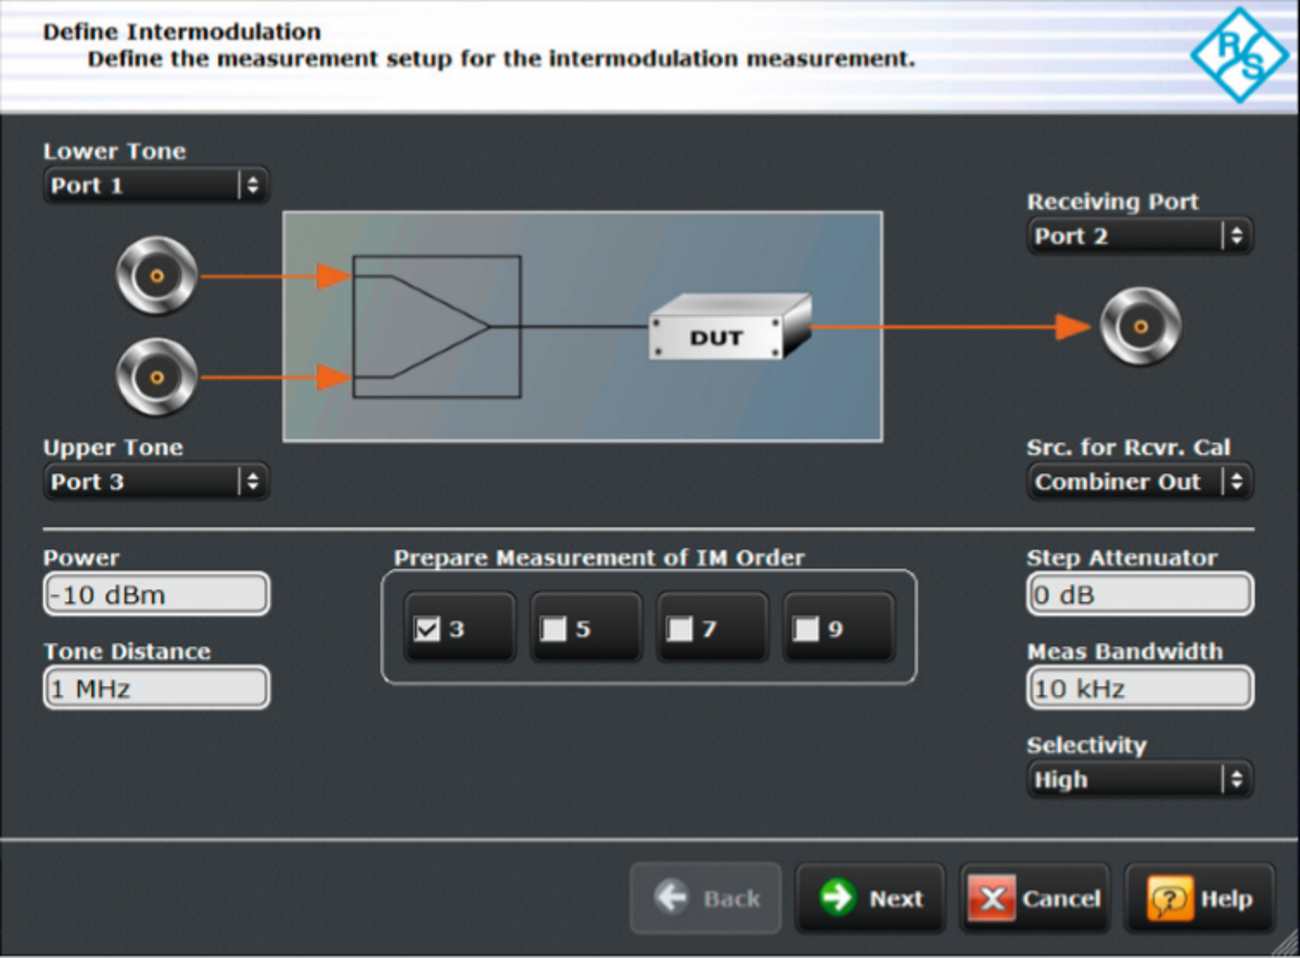 The intermodulation wizard is an intuitive tool guiding users step by step through instrument configuration.